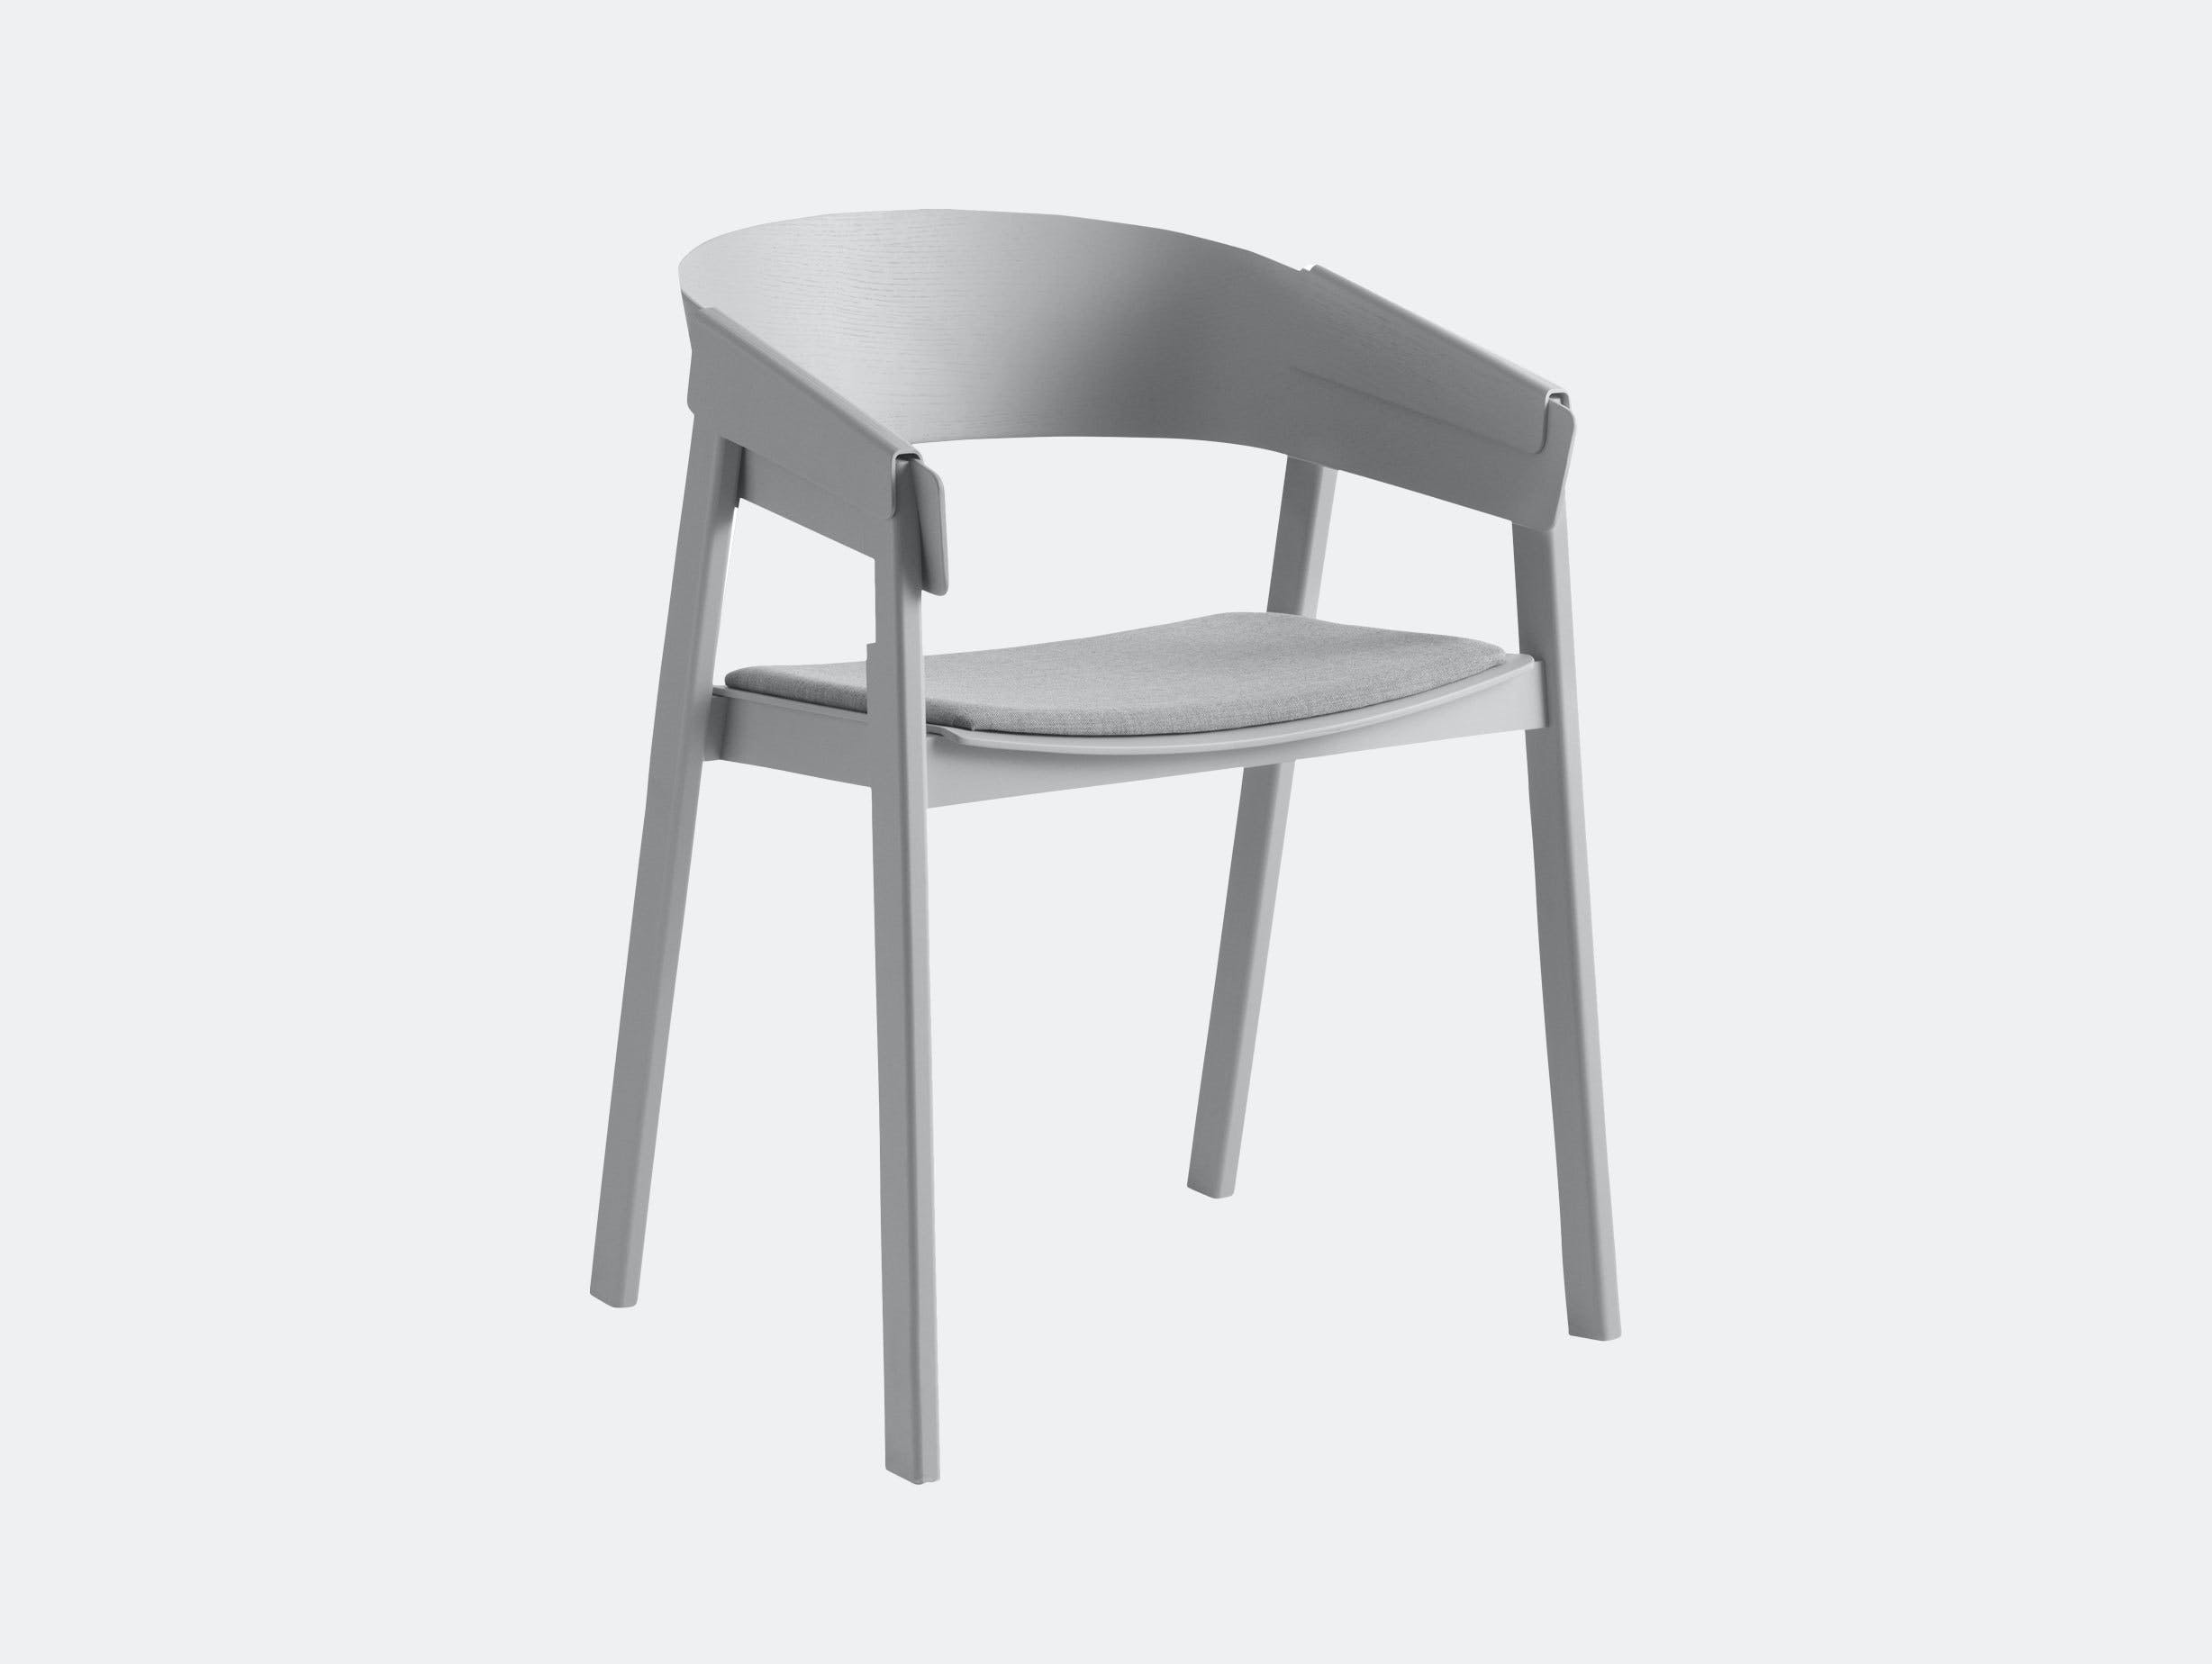 Cover Upholstered Chair image